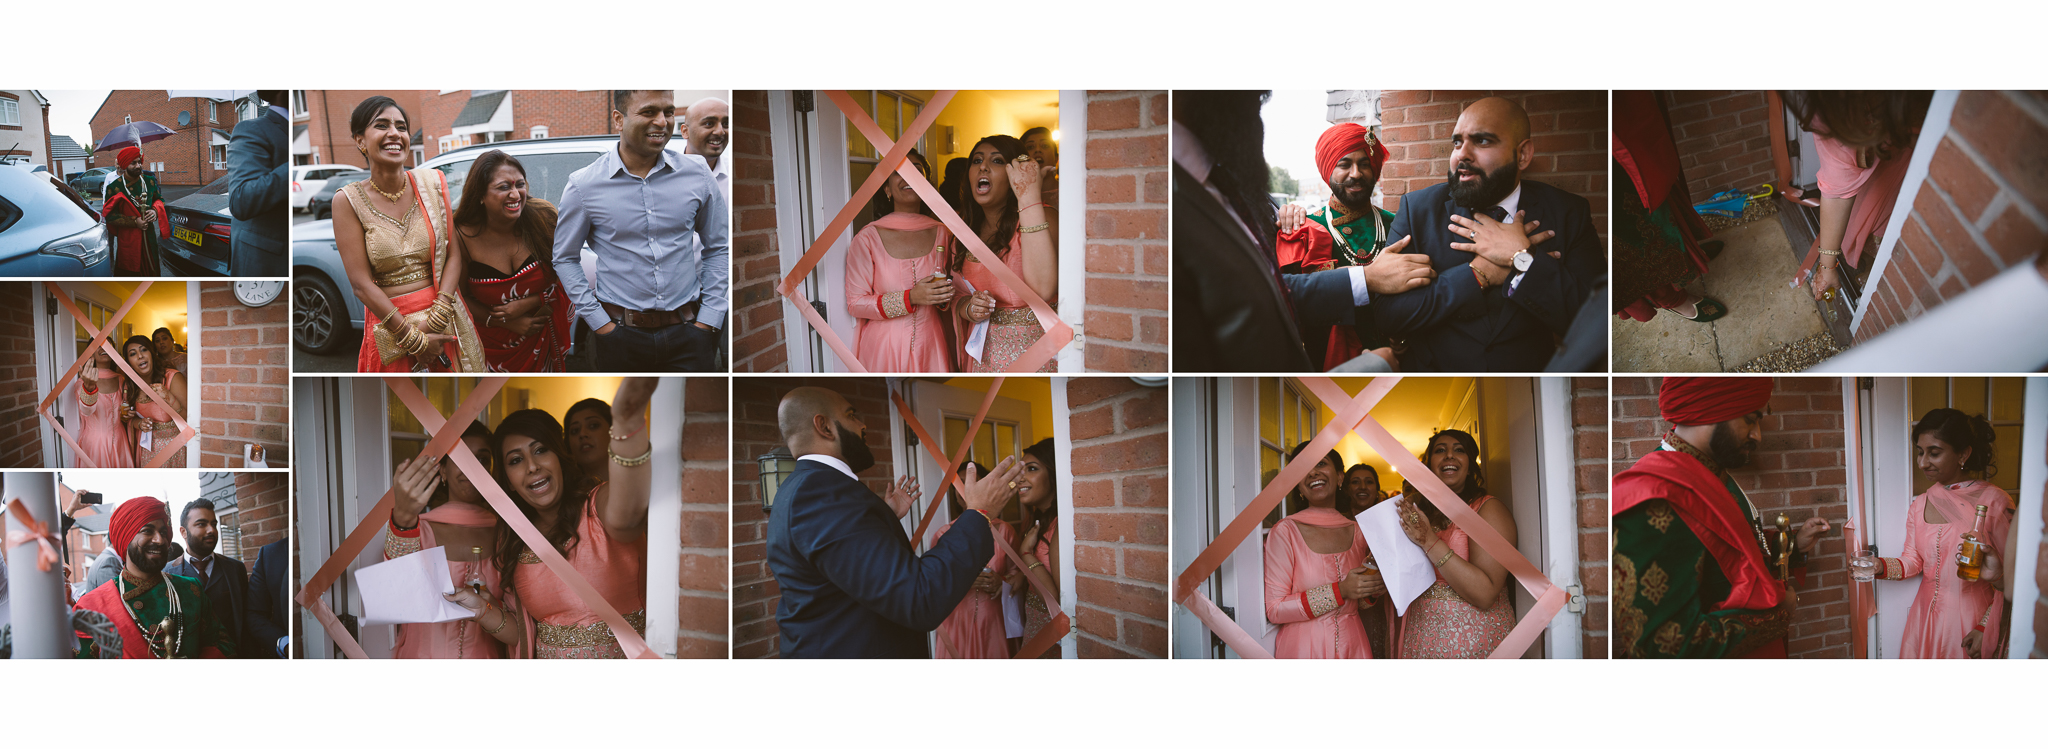 Zohaib Ali_Sikh Wedding_ London 057-058.jpg